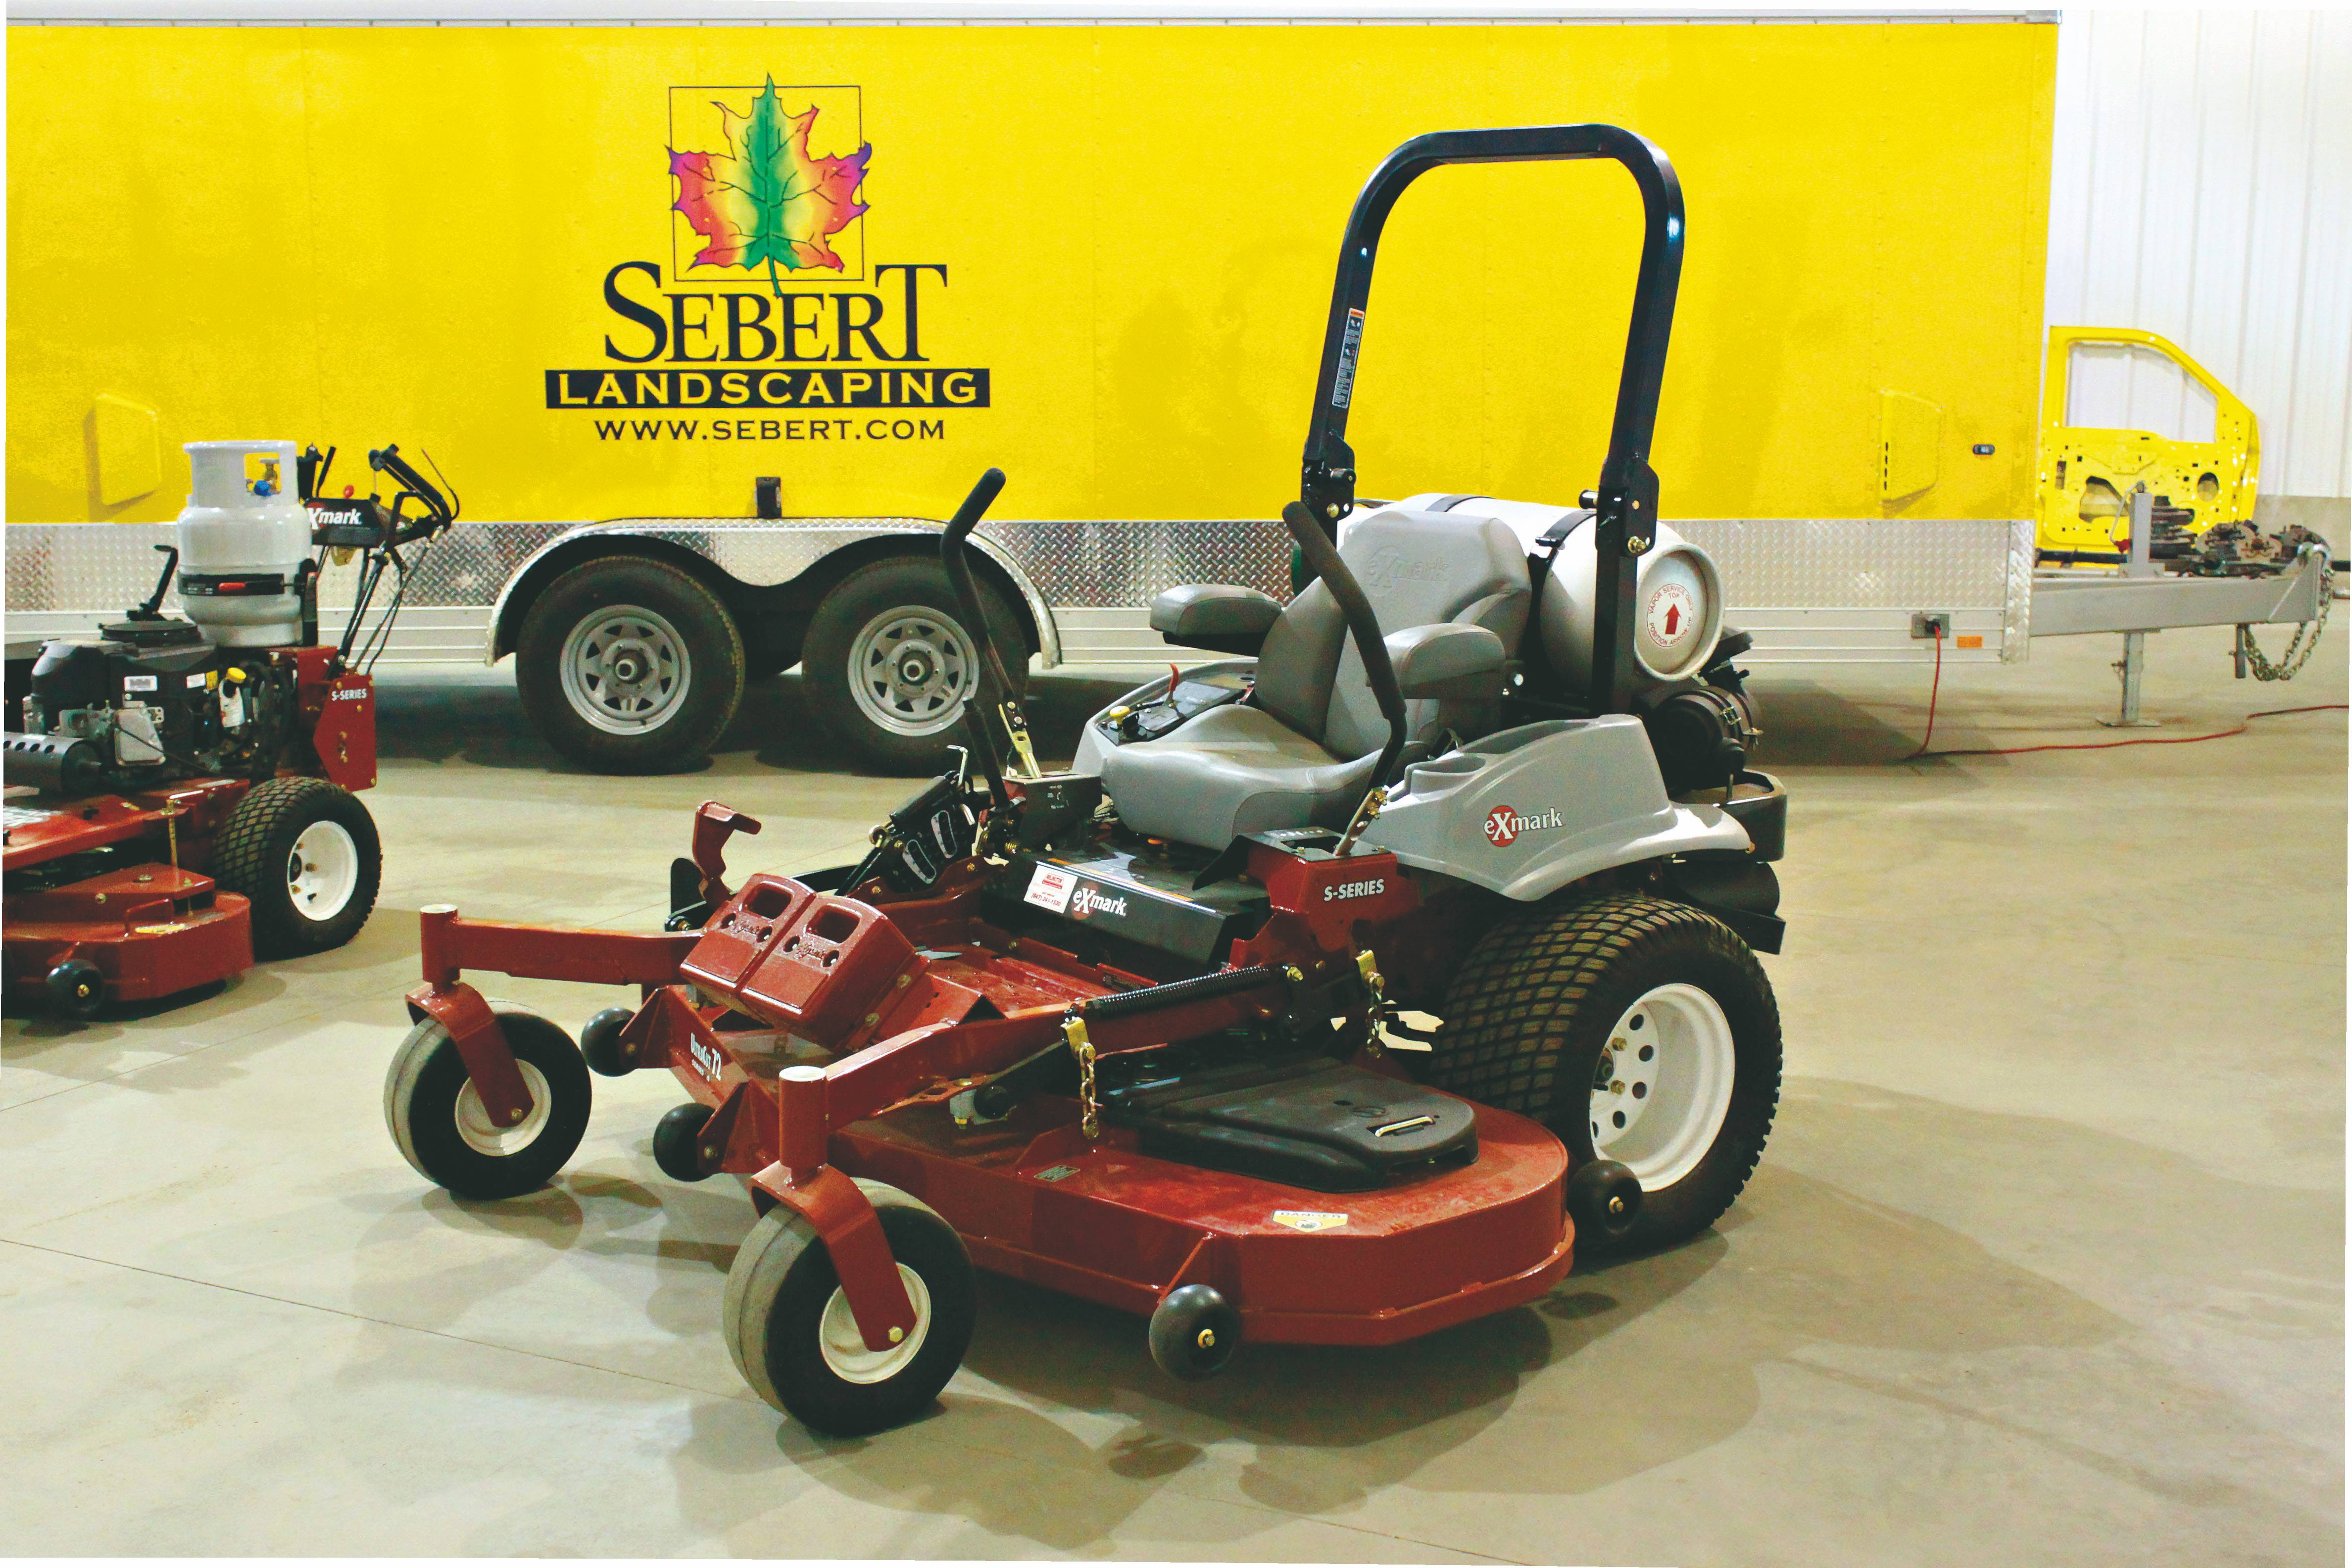 Sebert Landscaping's propane mowers and solar-powered trailer were among the reasons the company won two national environmental awards.